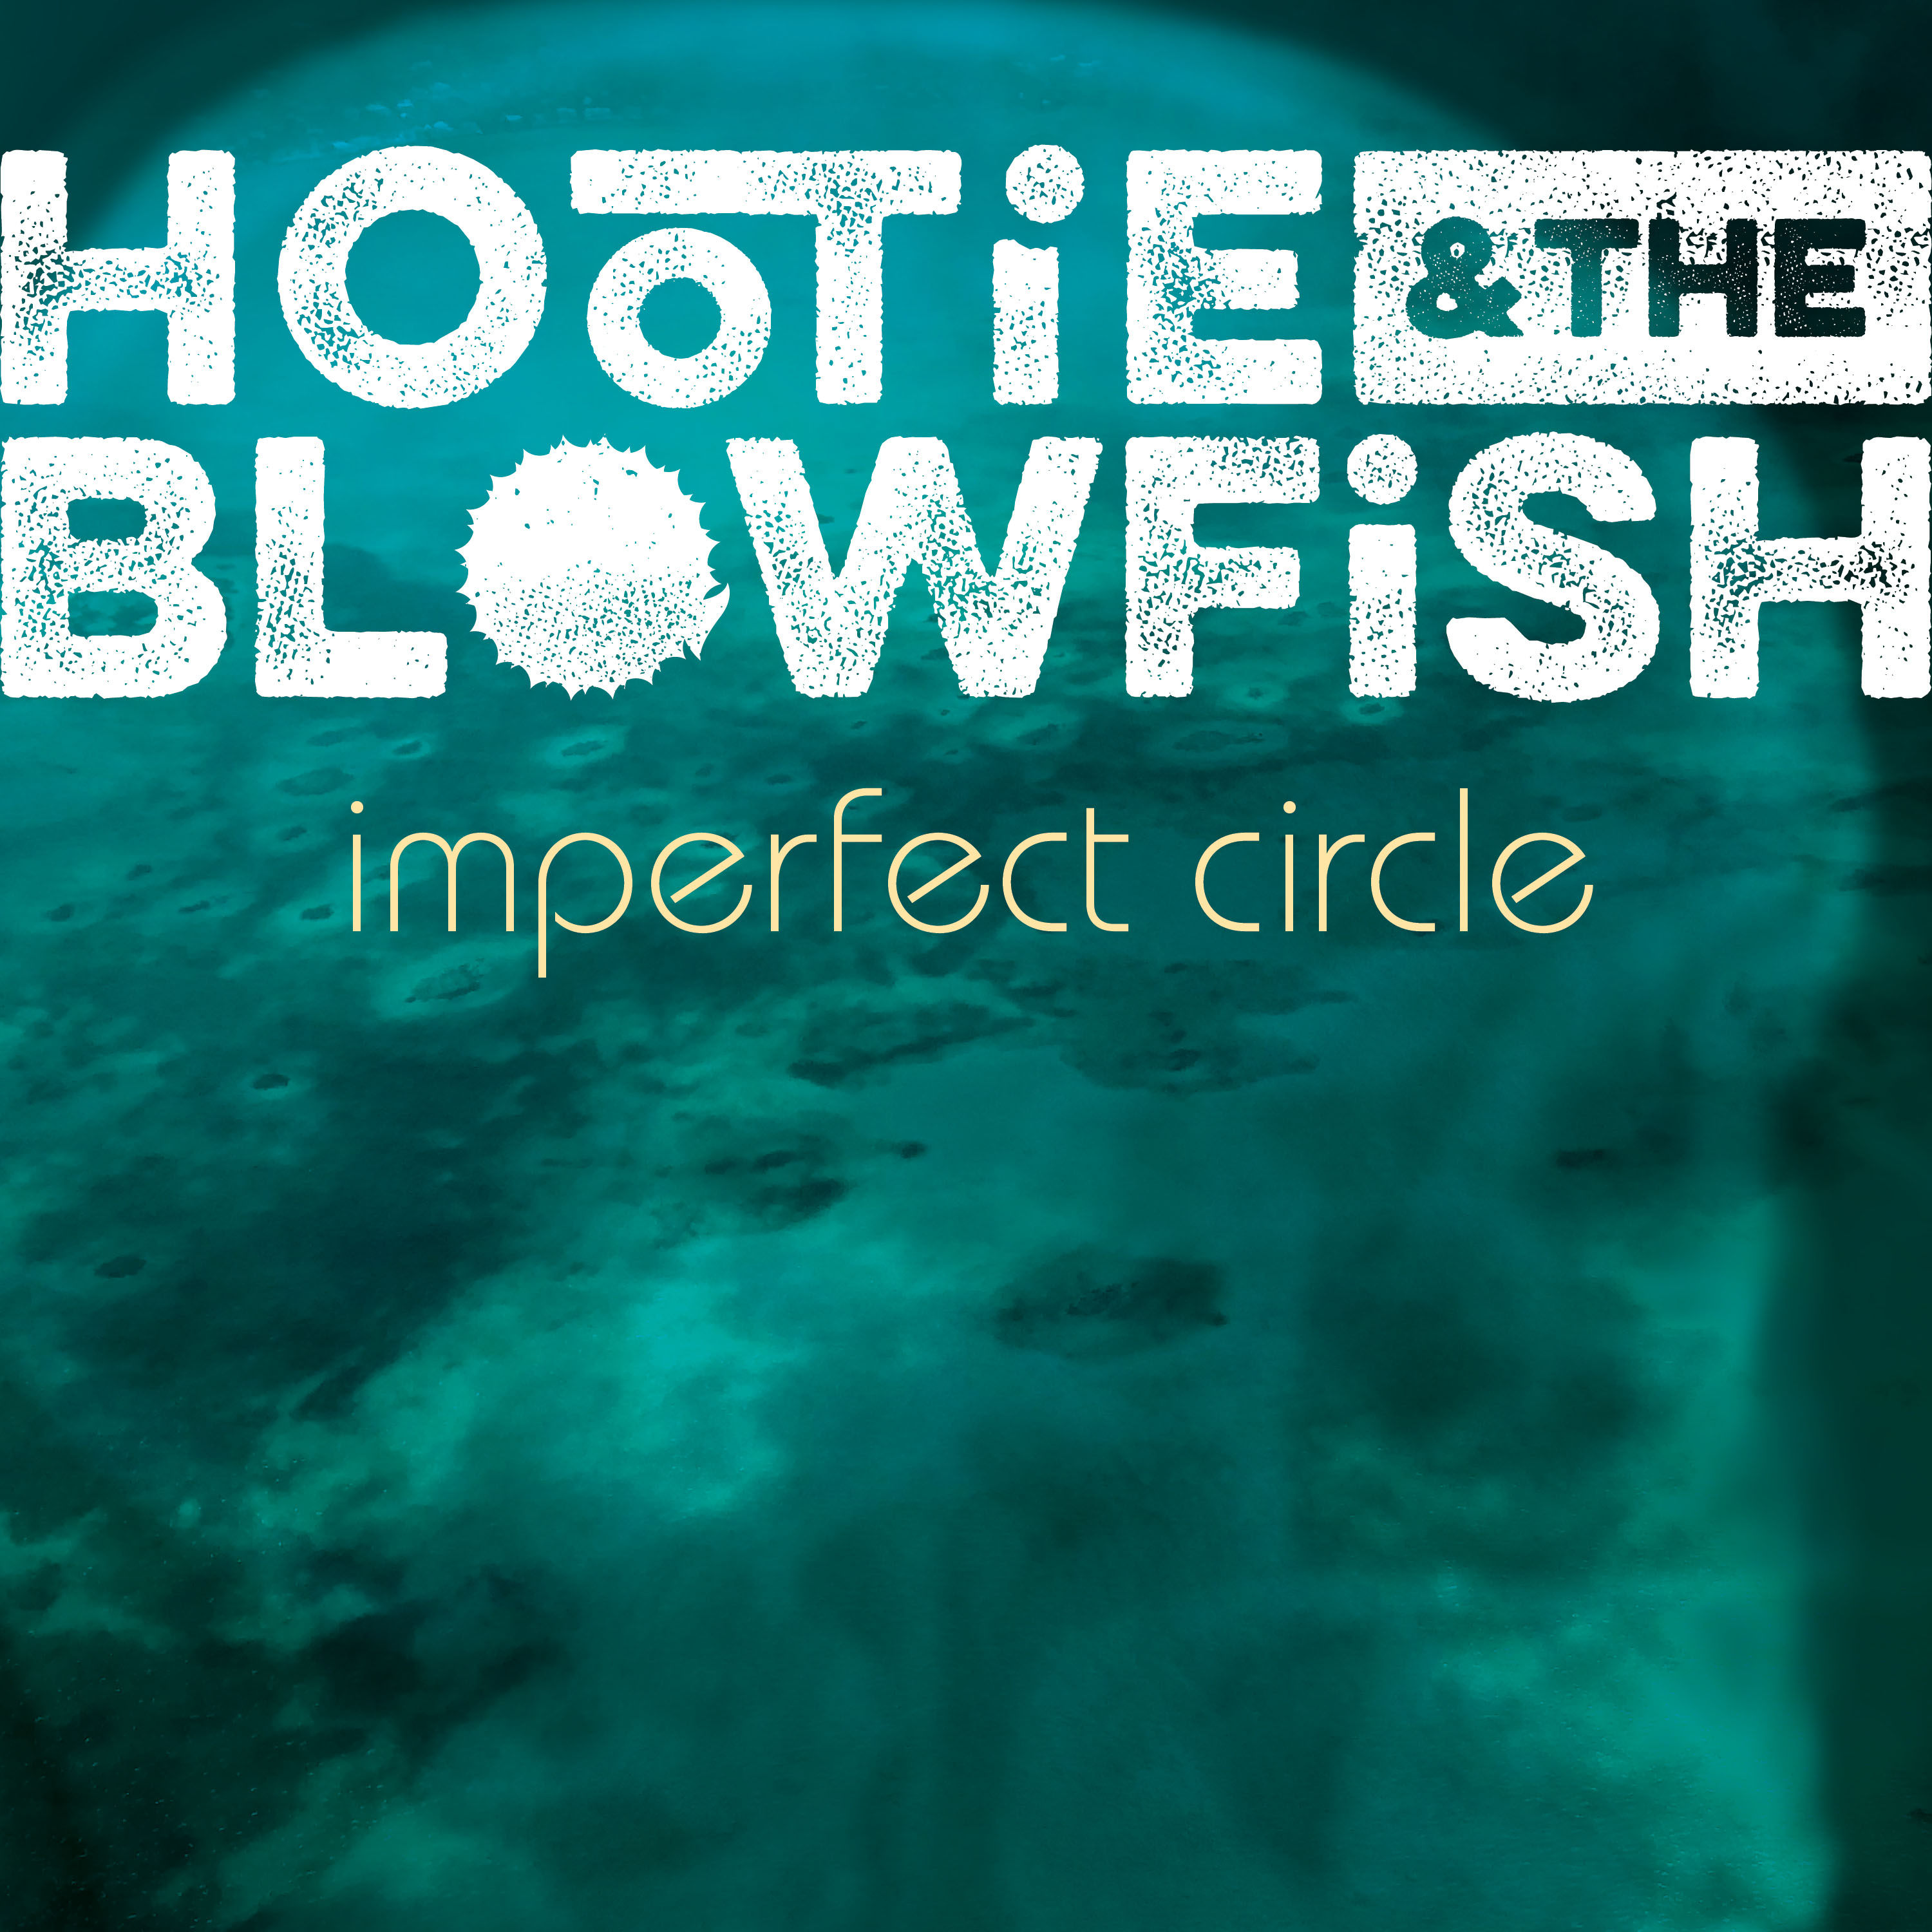 Hootie & The Blowfish Release New Album, 'Imperfect Circle'